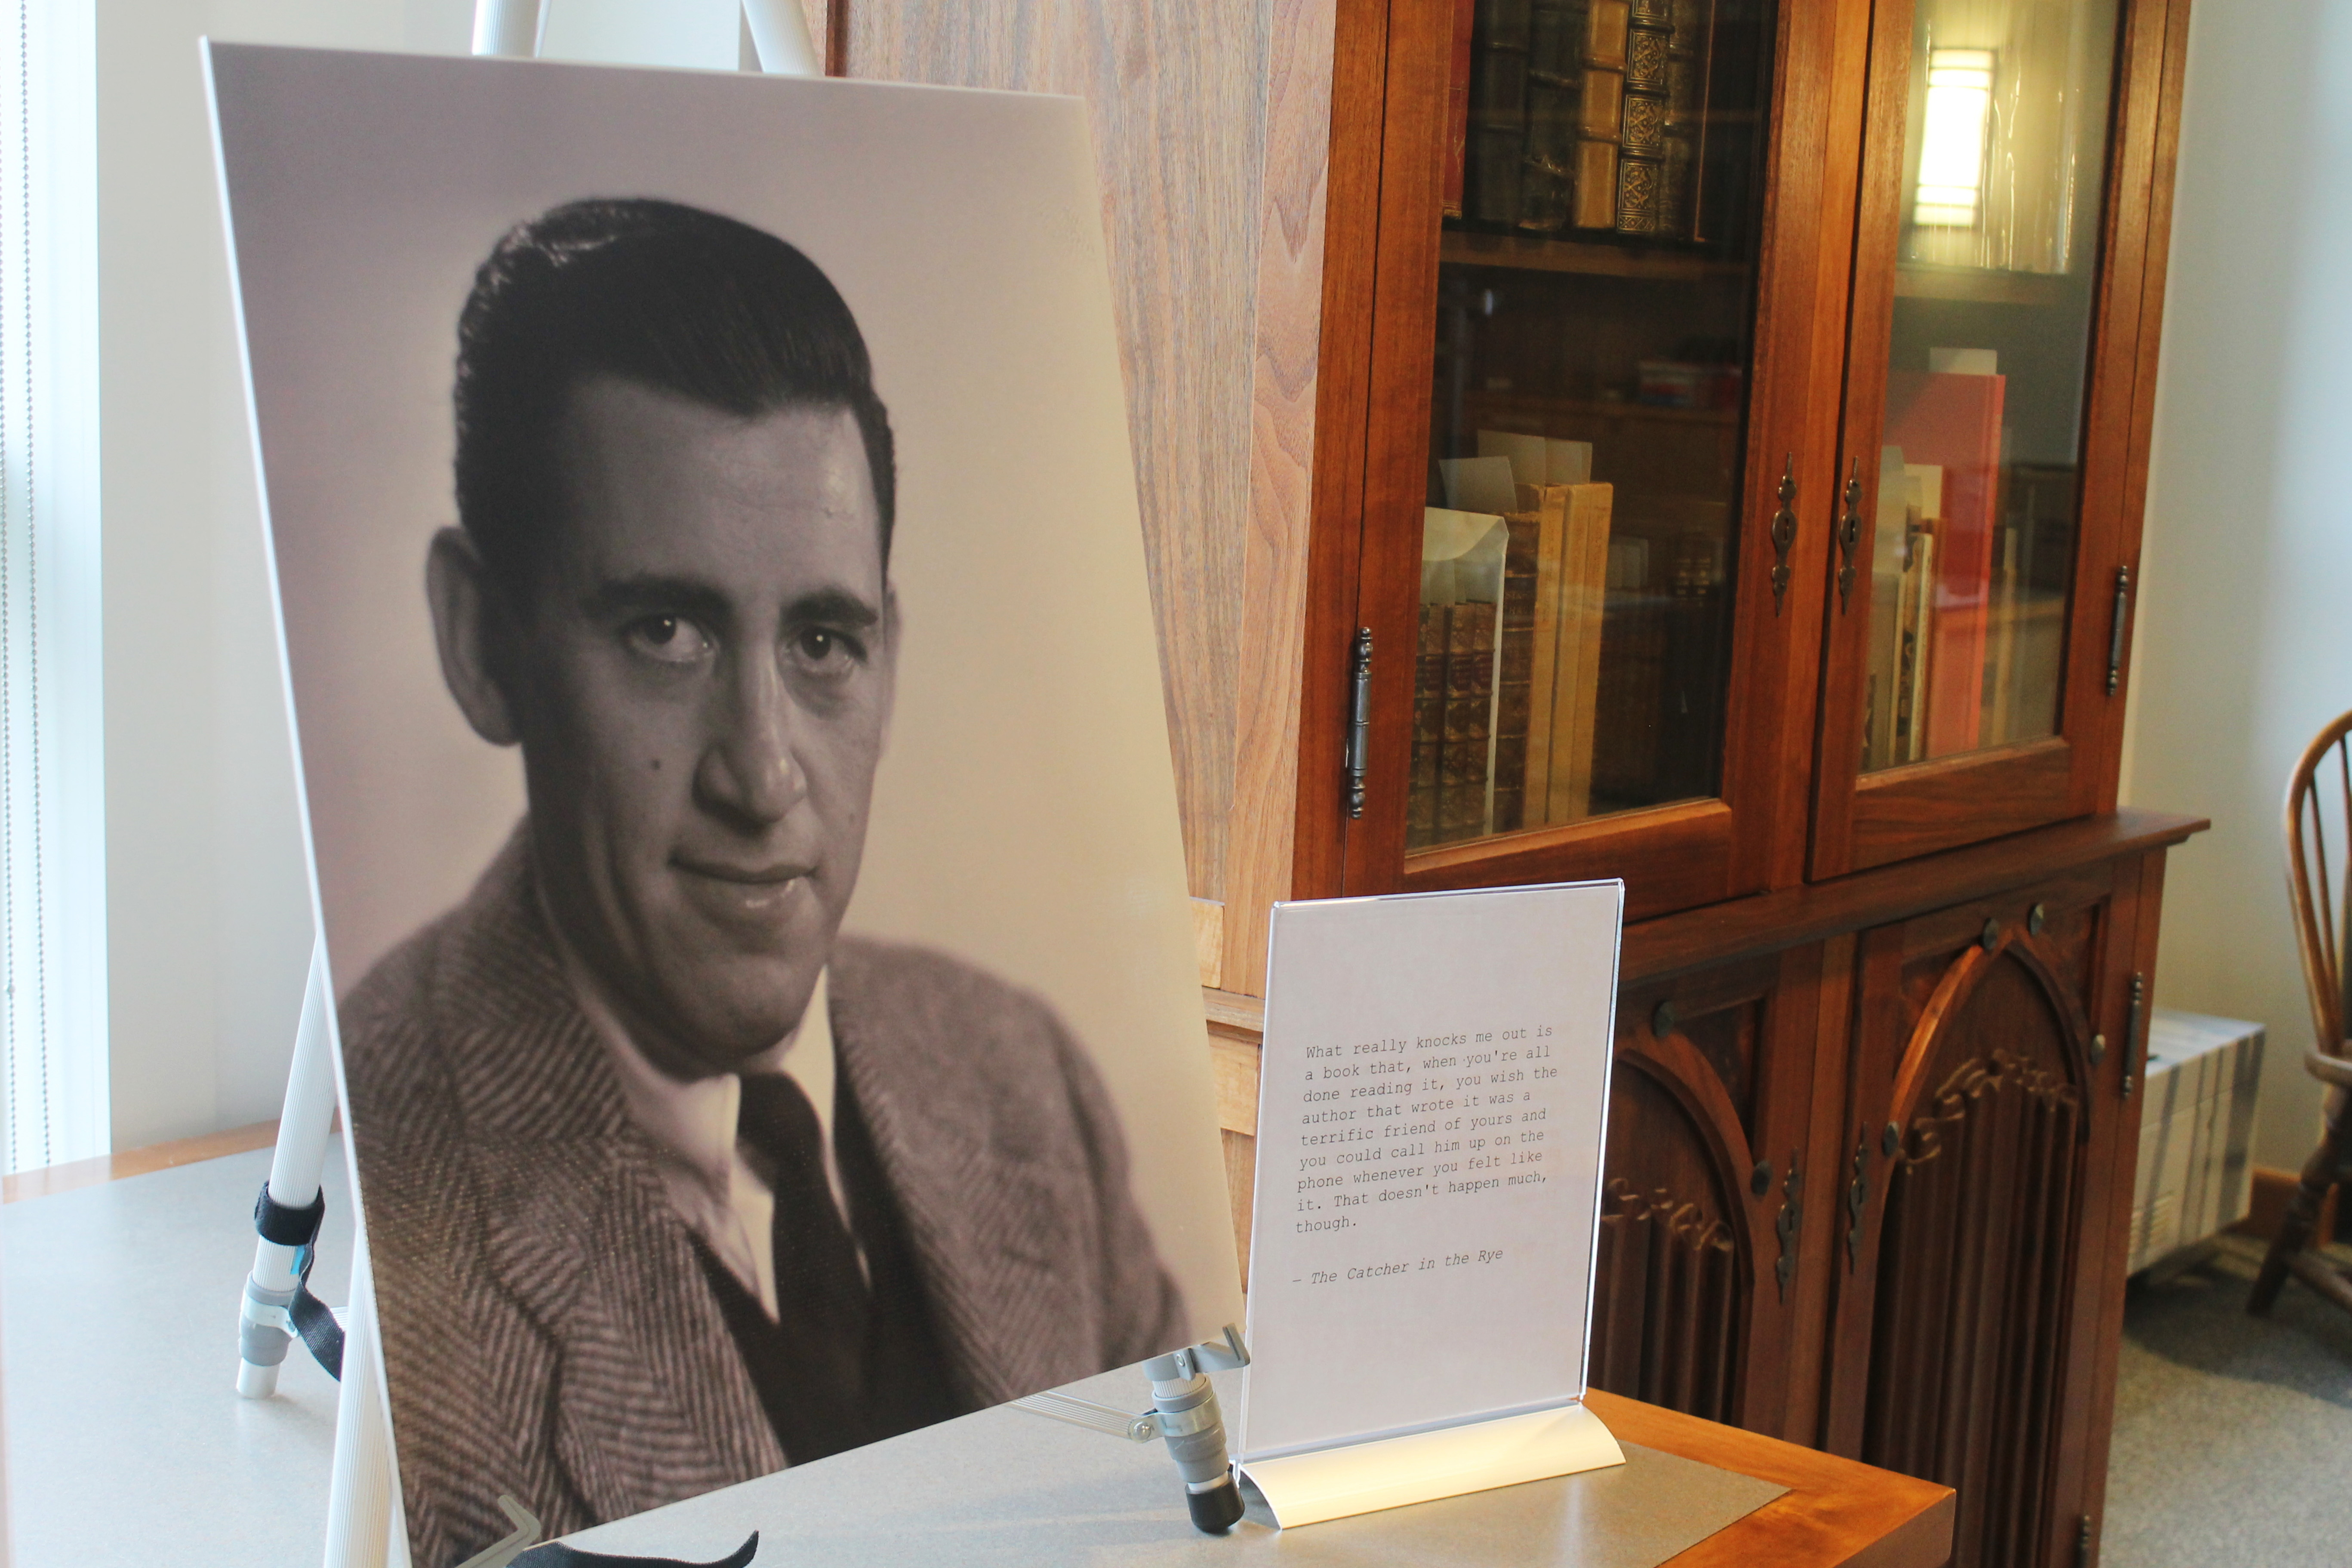 A previously unseen photo of author J.D. Salinger is displayed at the University of New Hampshire in Durham, N.H., on Tuesday, Jan. 22, 2019. The photos taken for the book jacket of Salinger's 1951 novel,